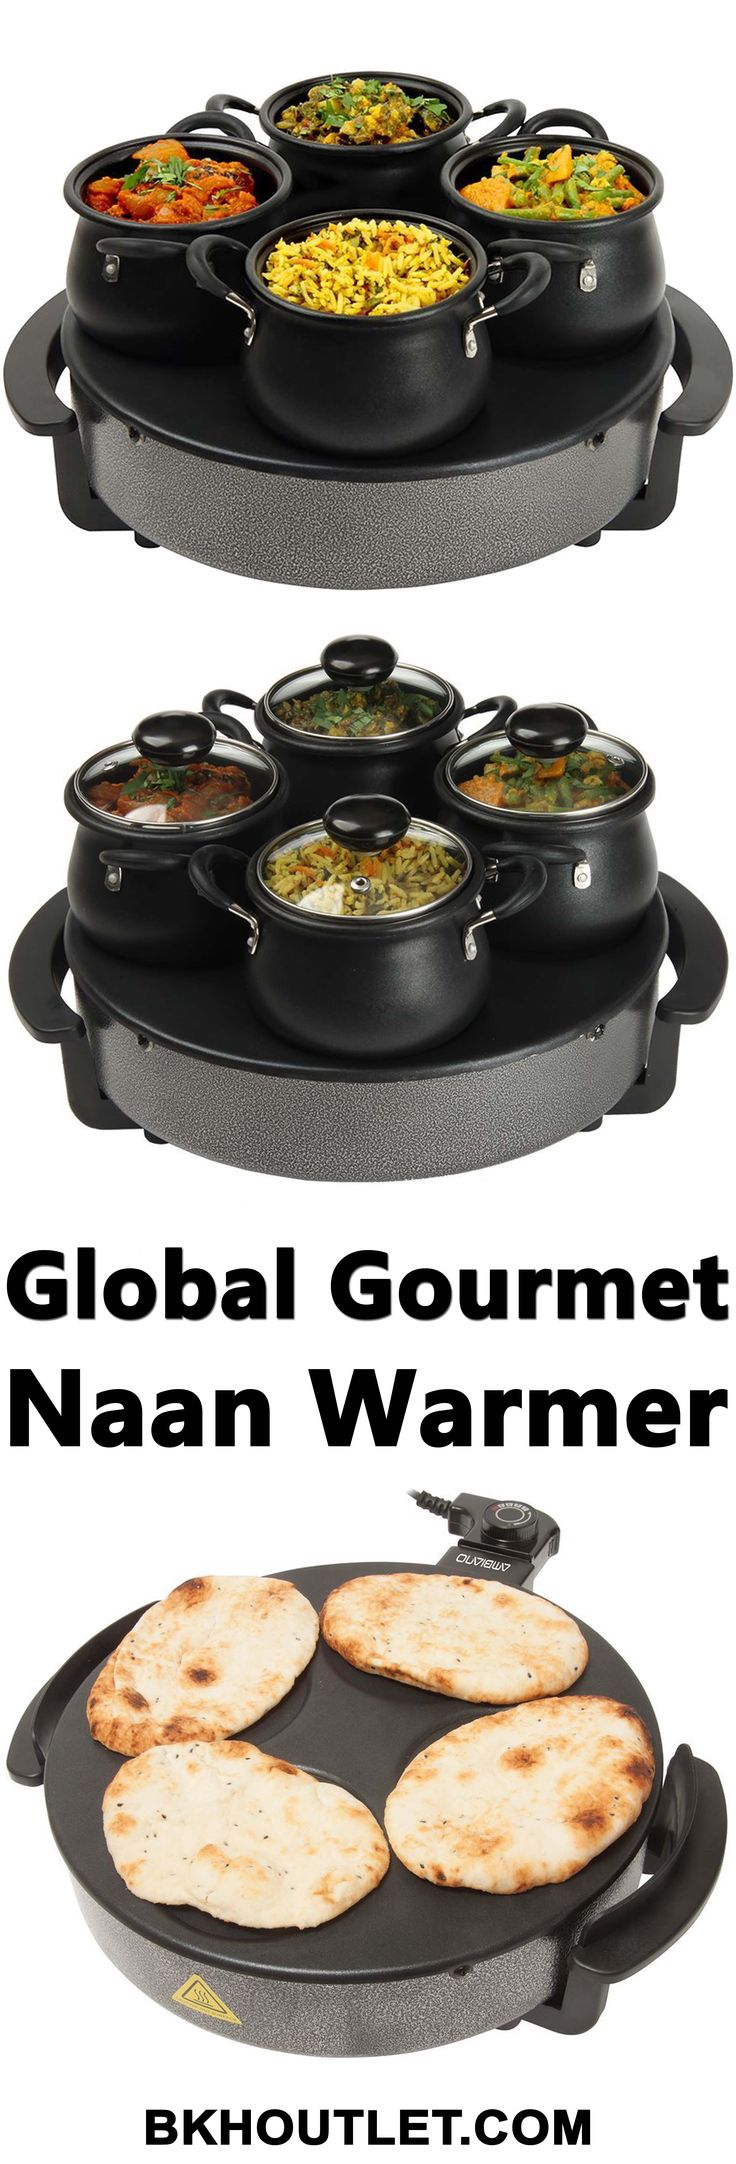 Now You Can Host Delicious Dinner Parties with the Unique Indian Curry Serving Station from Global Gourmet! │kitchen appliances │blender │coffee maker │hot plates │kettles │mixers │slow cookers │steamers │toasters │kitchen tools │pressure cooker │kitchen appliances │kitchen tools #kitchenappliances #blender #coffeemaker #hotplates #kettles #mixers #slowcookers #steamers #toasters #kitchentools #pressurecooker #kitchenappliances #kitchentools